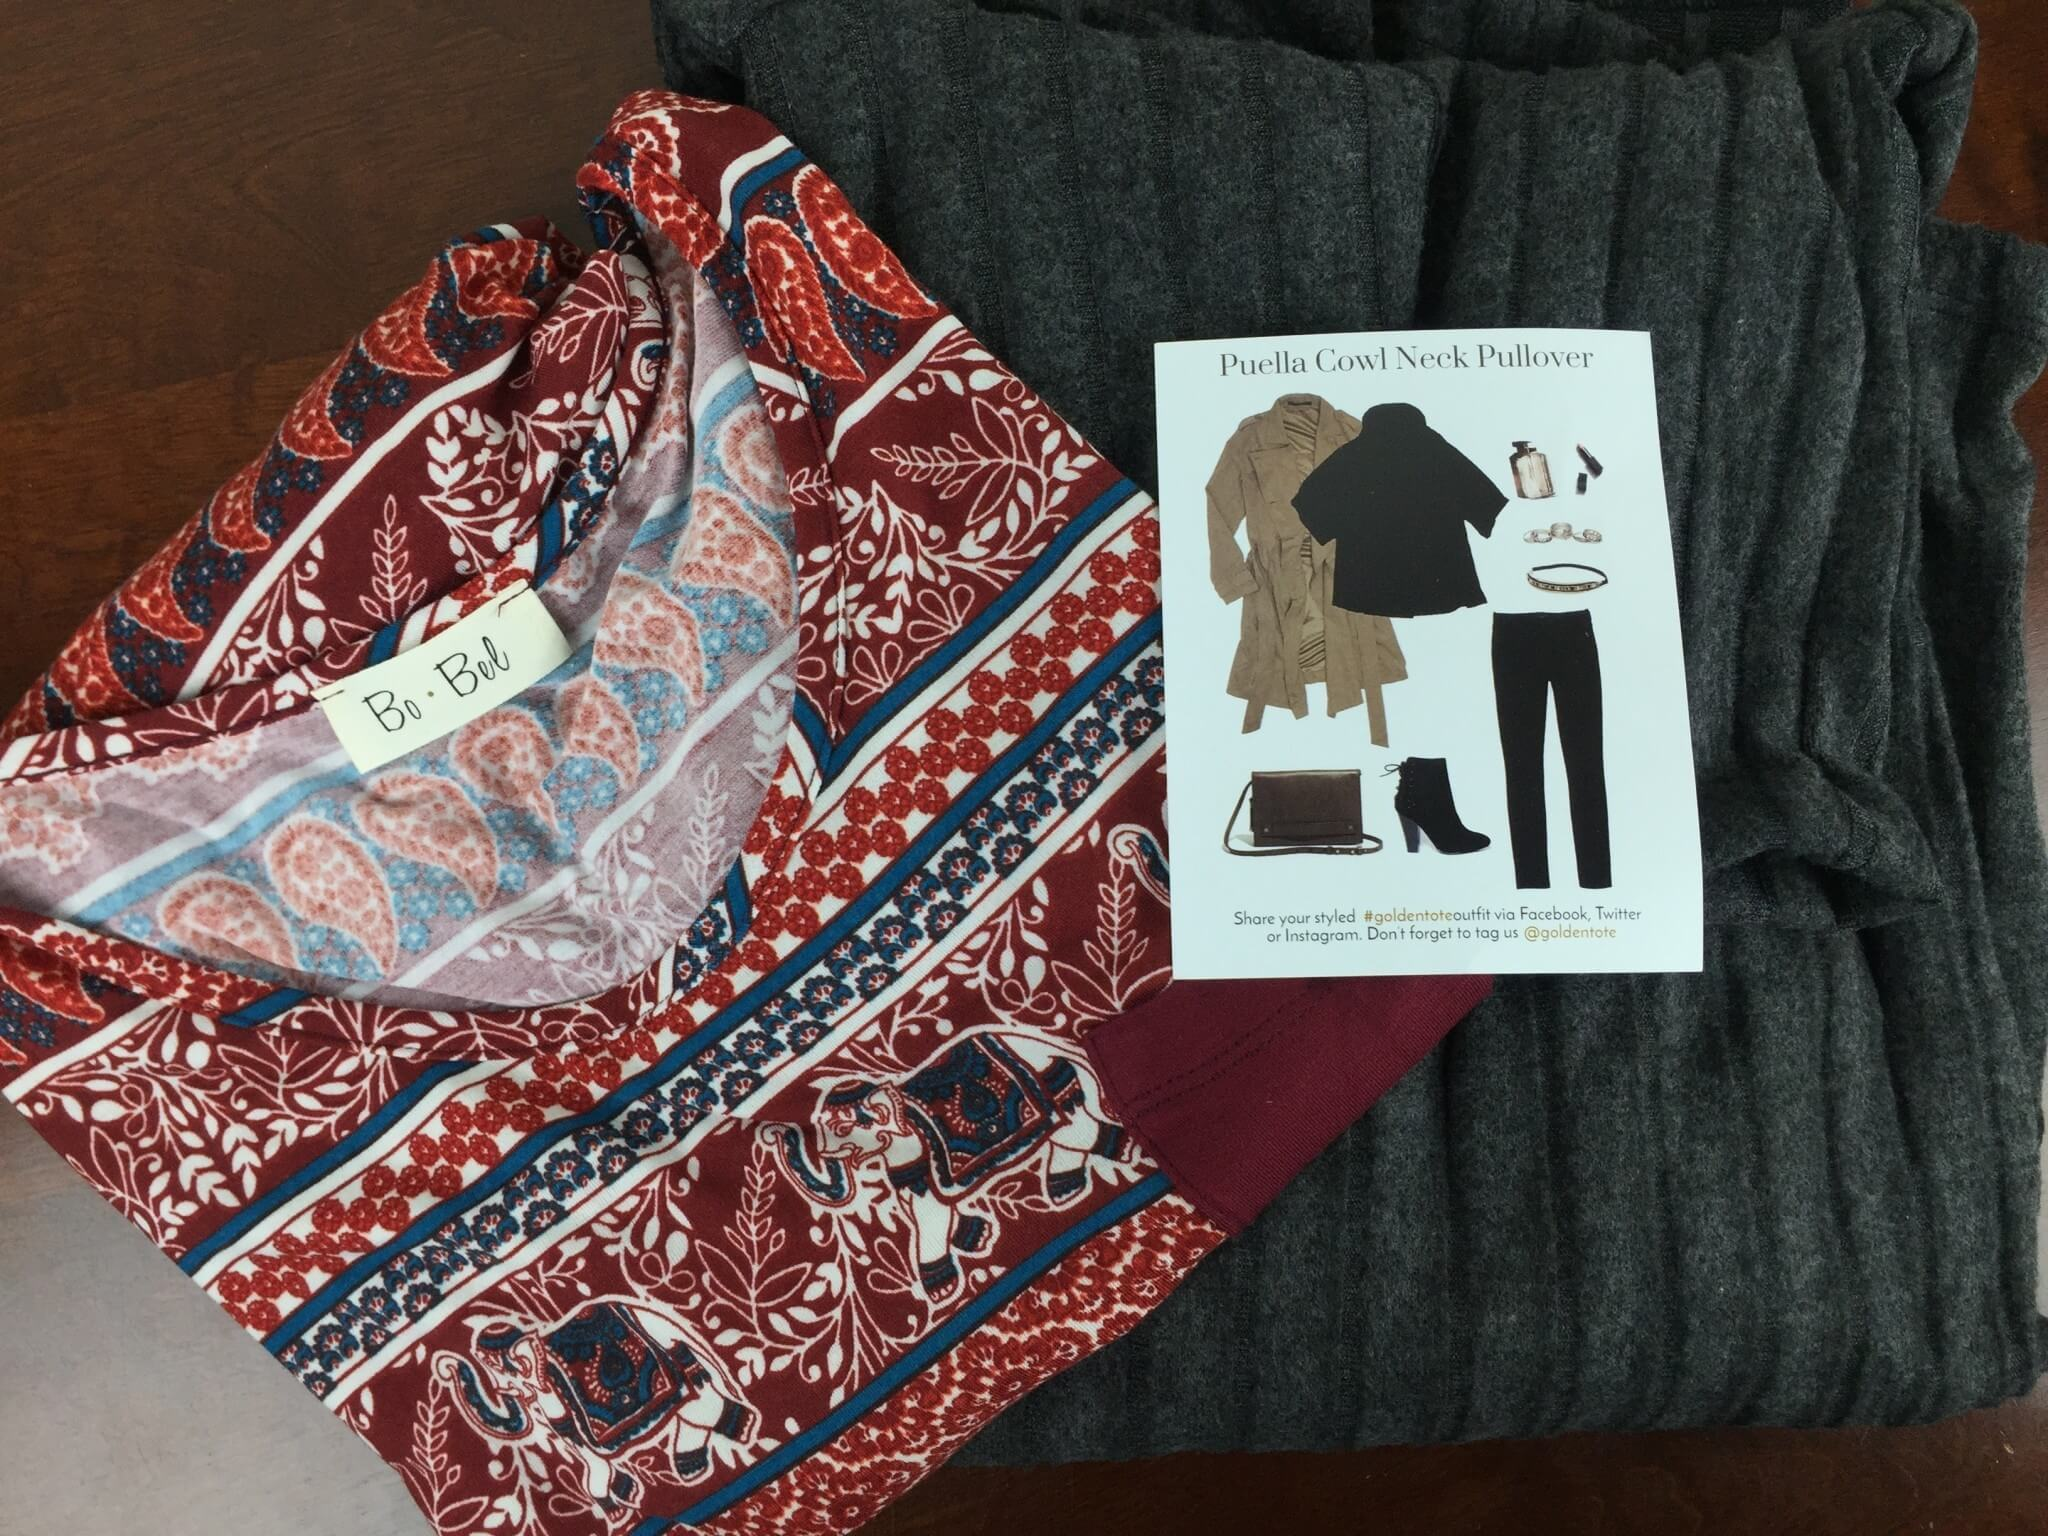 Golden Tote January 2016 $49 Tote Review